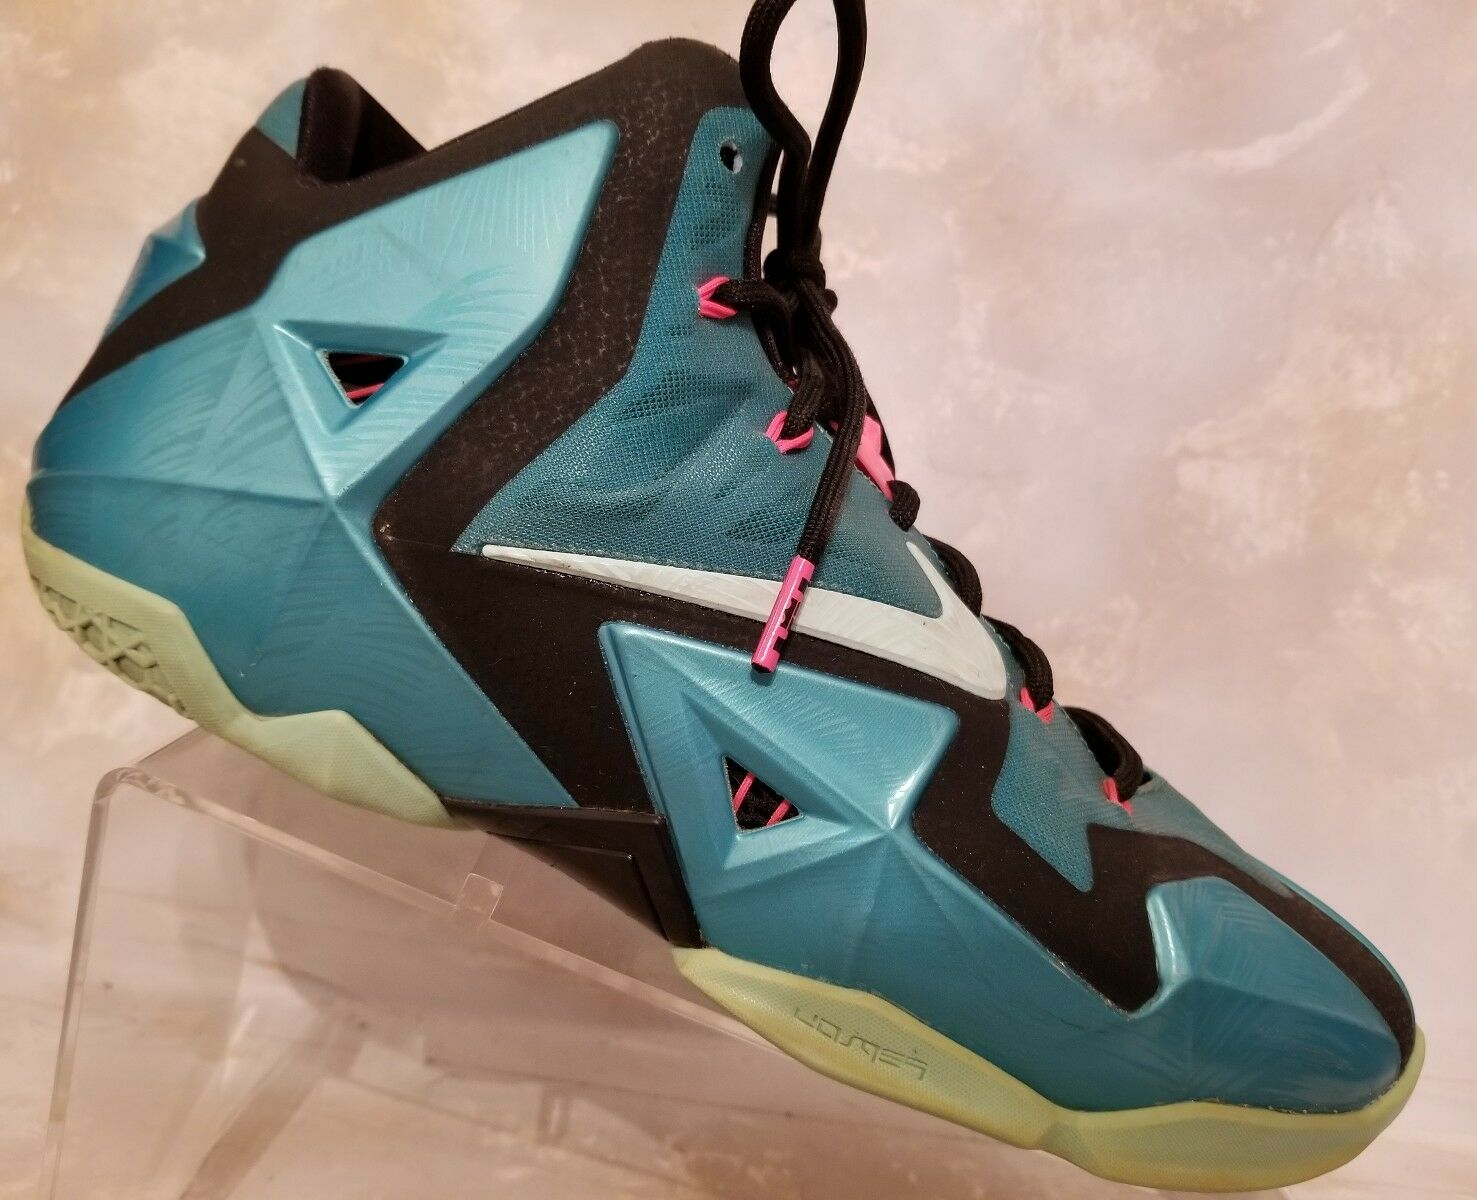 Nike Lebron James Flywire Teal Pink Athletic Basketball Sneaker shoes Mens 10.5